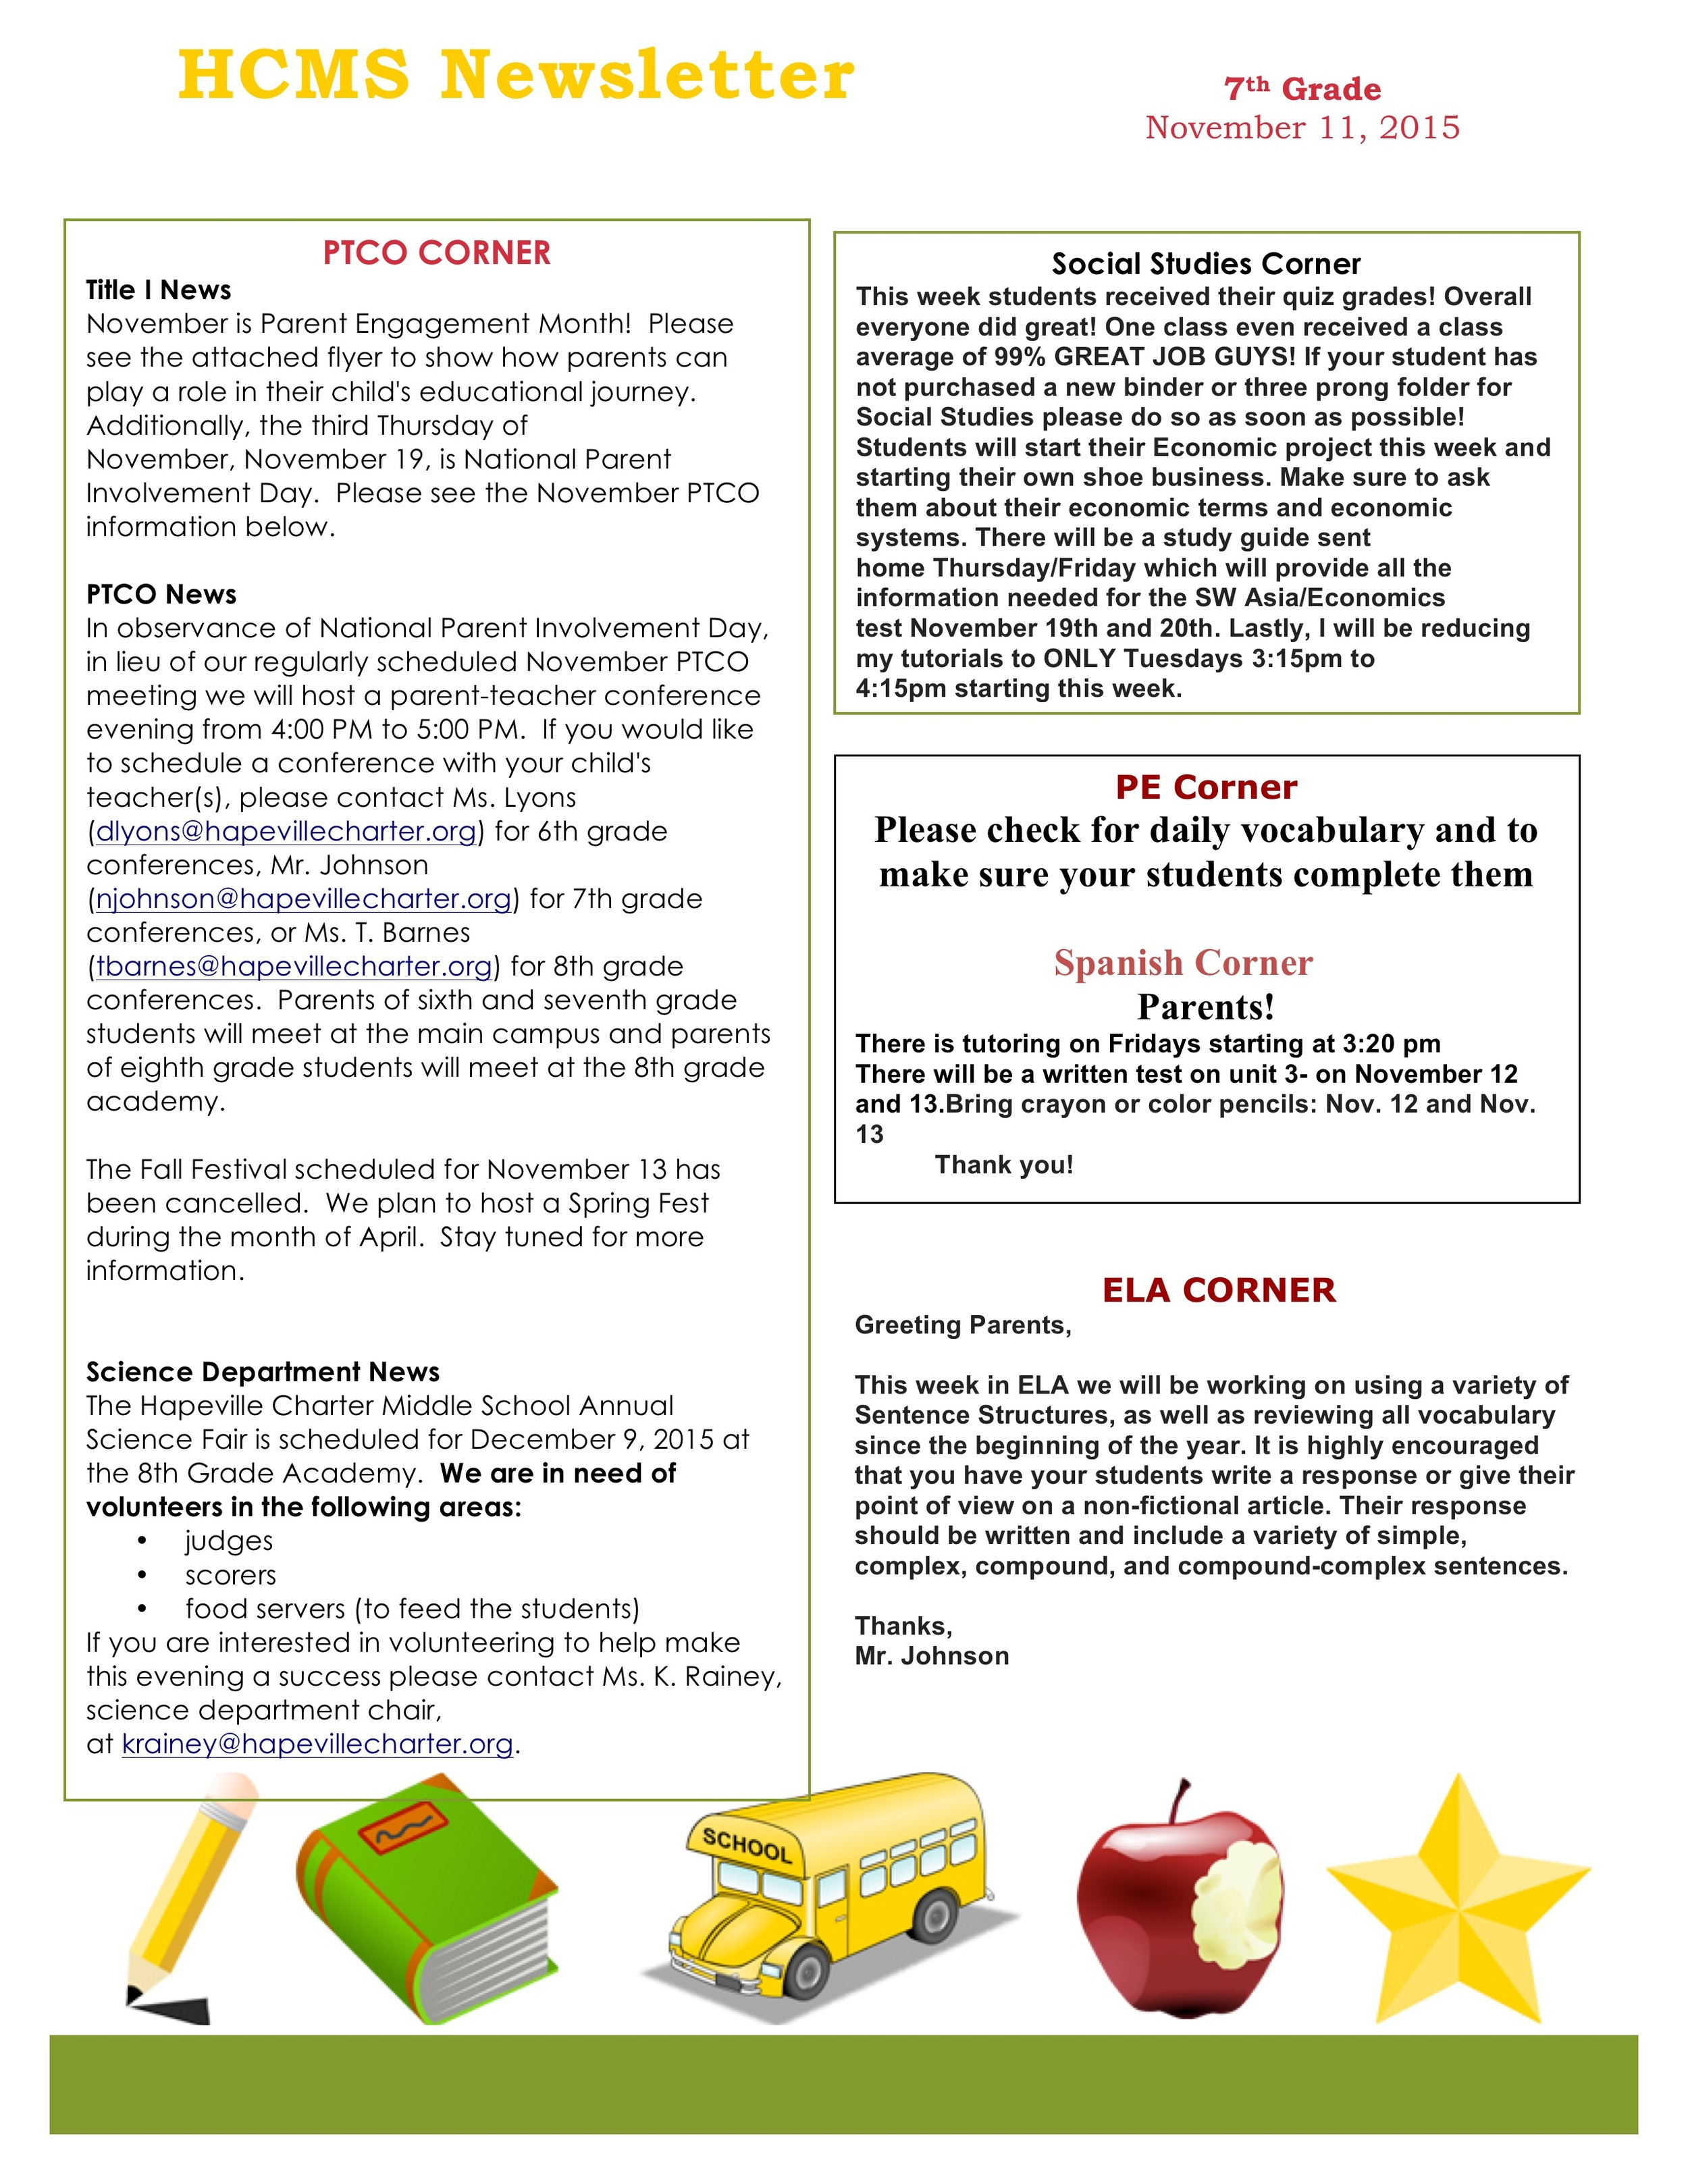 Newsletter Image7th grade Nov 9.jpeg